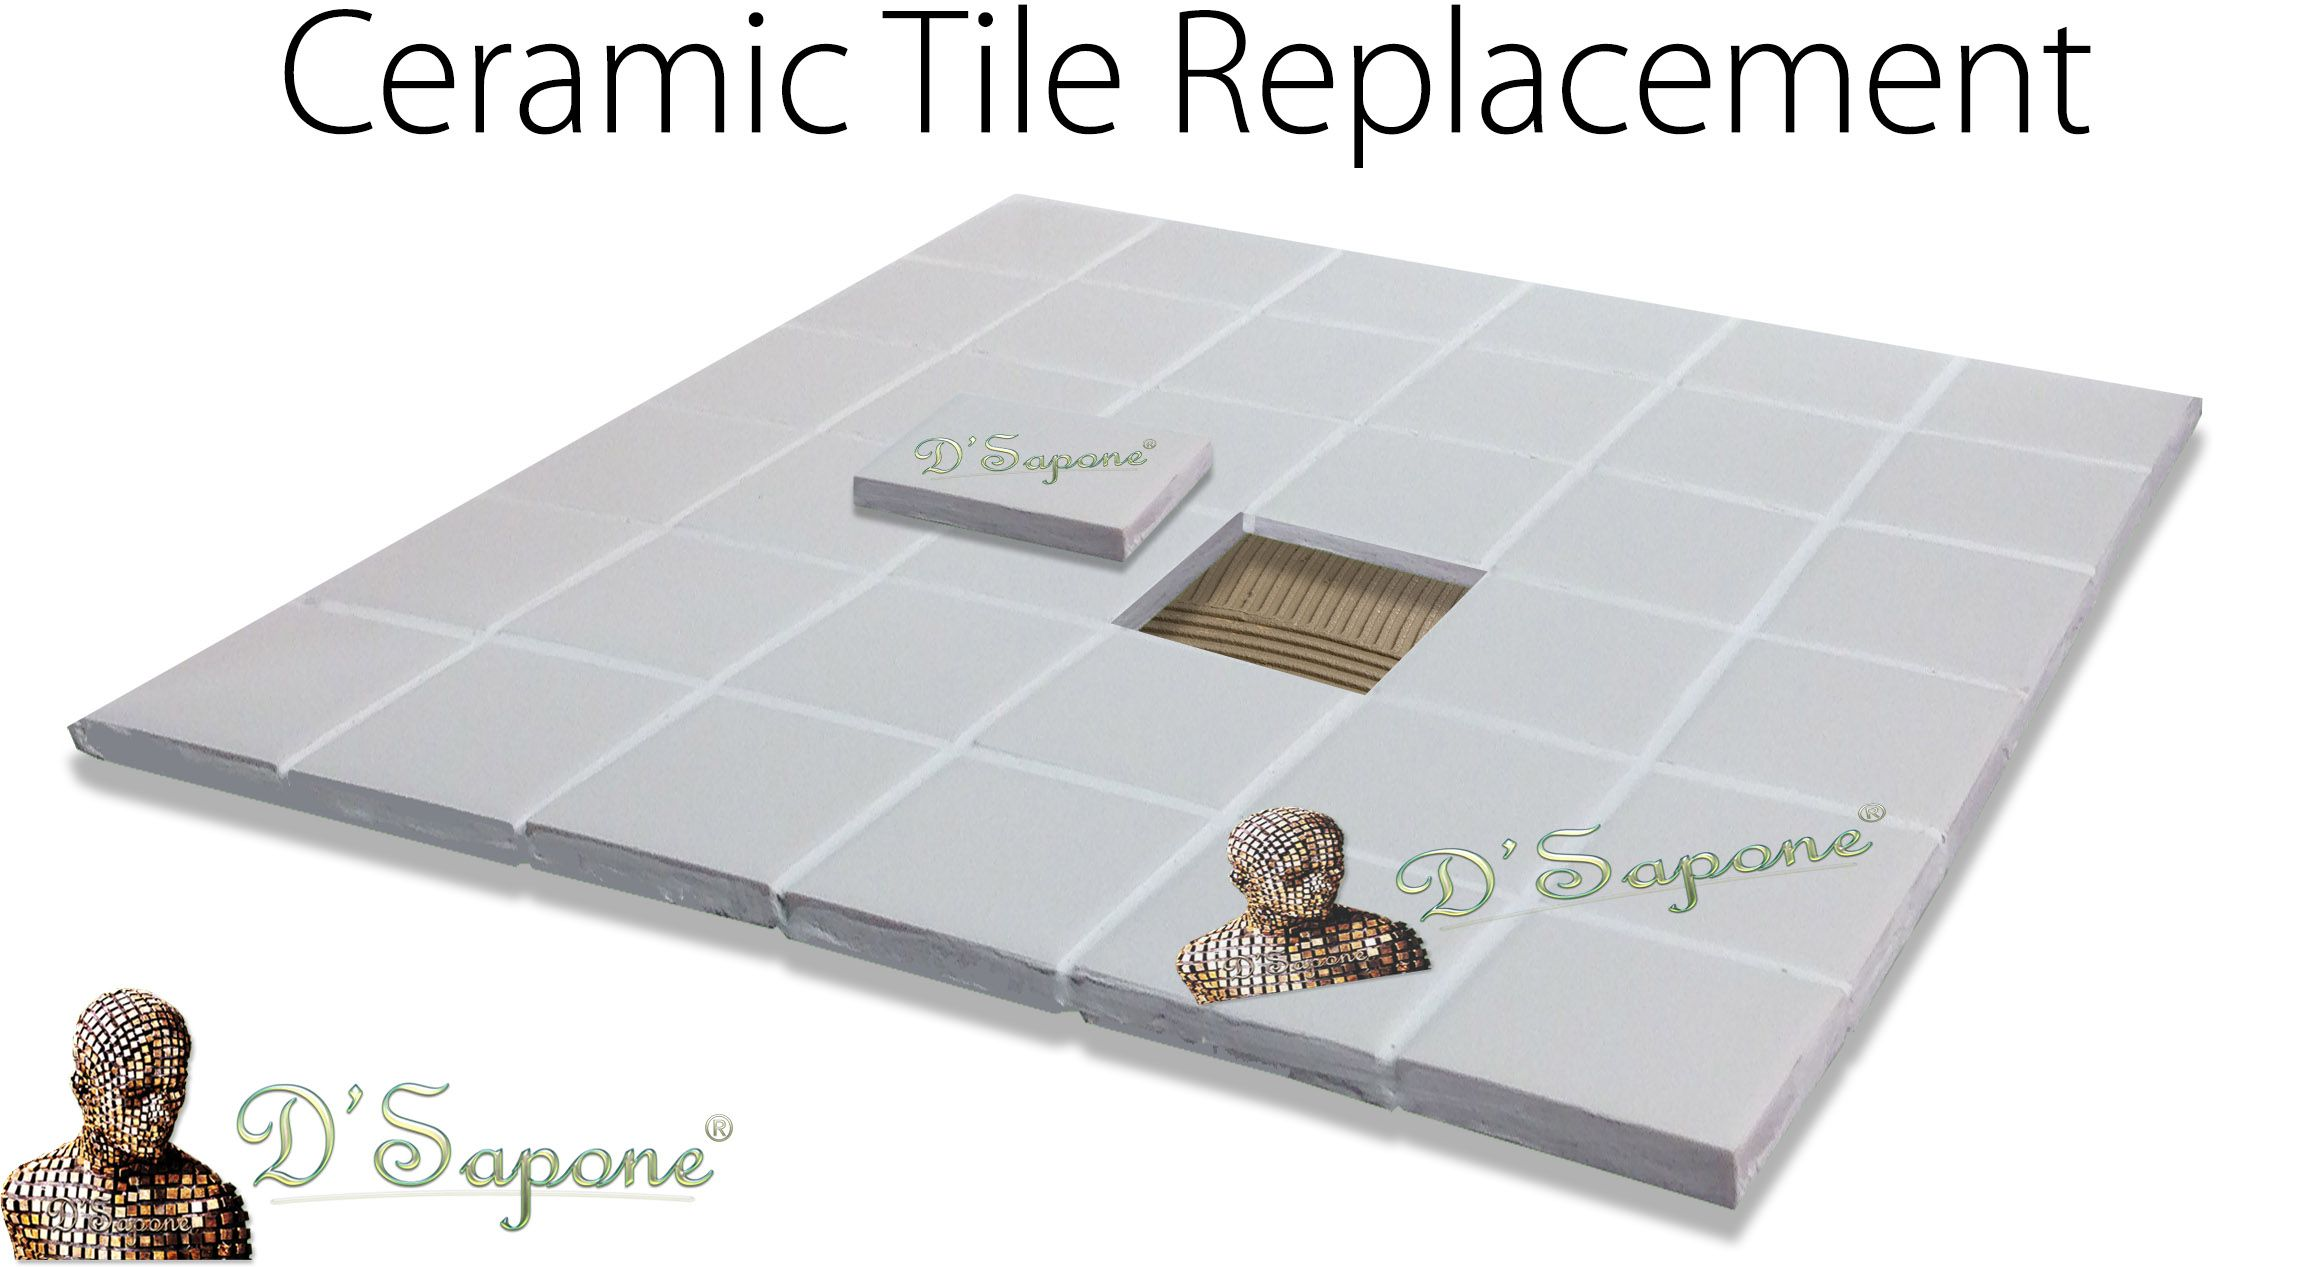 If You Have An Extra Ceramictile We Will Replace The Cracked